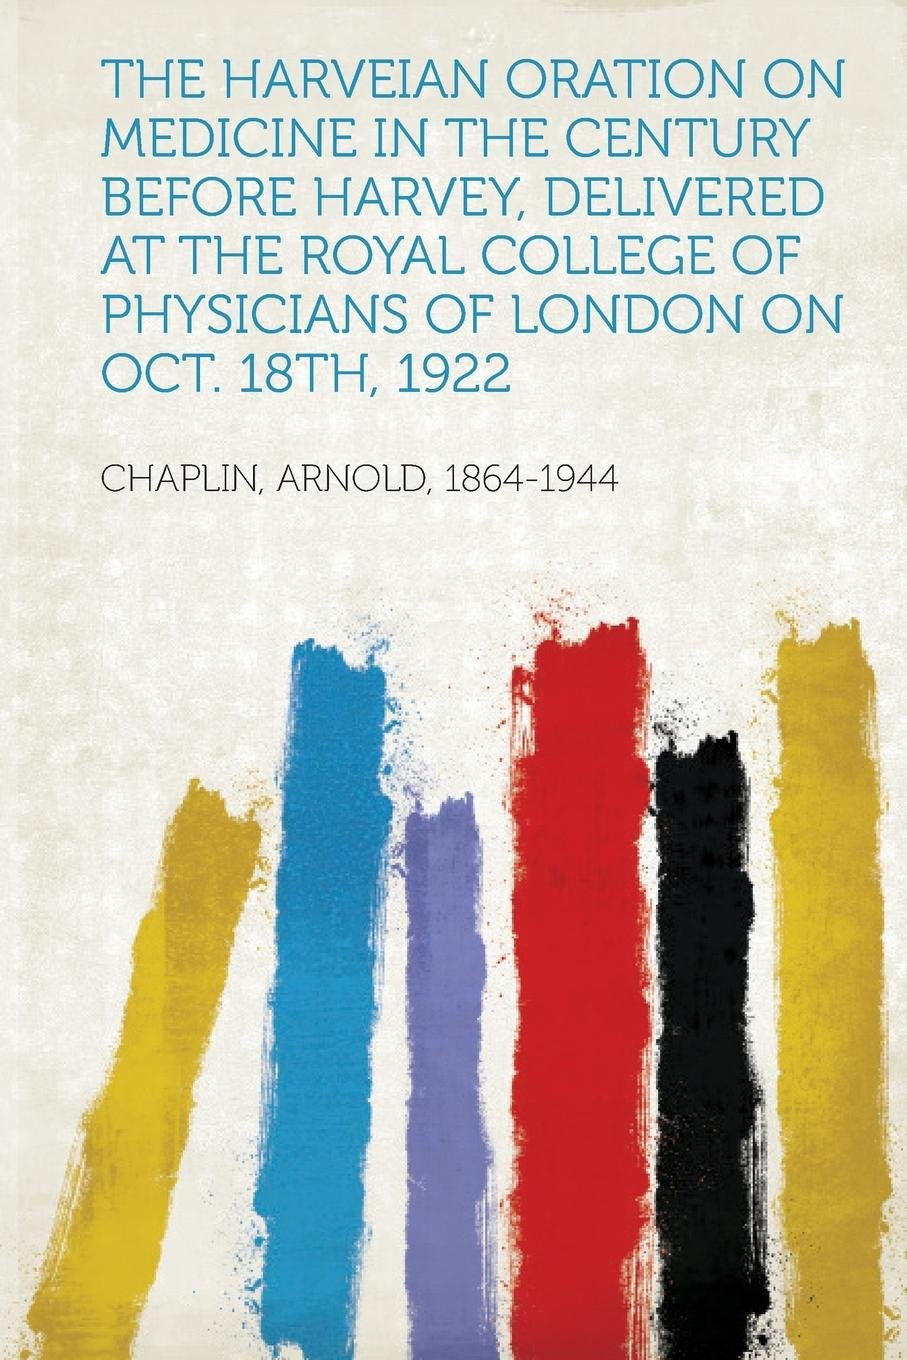 The Harveian Oration on Medicine in the Century Before Harvey, Delivered at the Royal College of Physicians of London on Oct. 18th, 1922 pdf